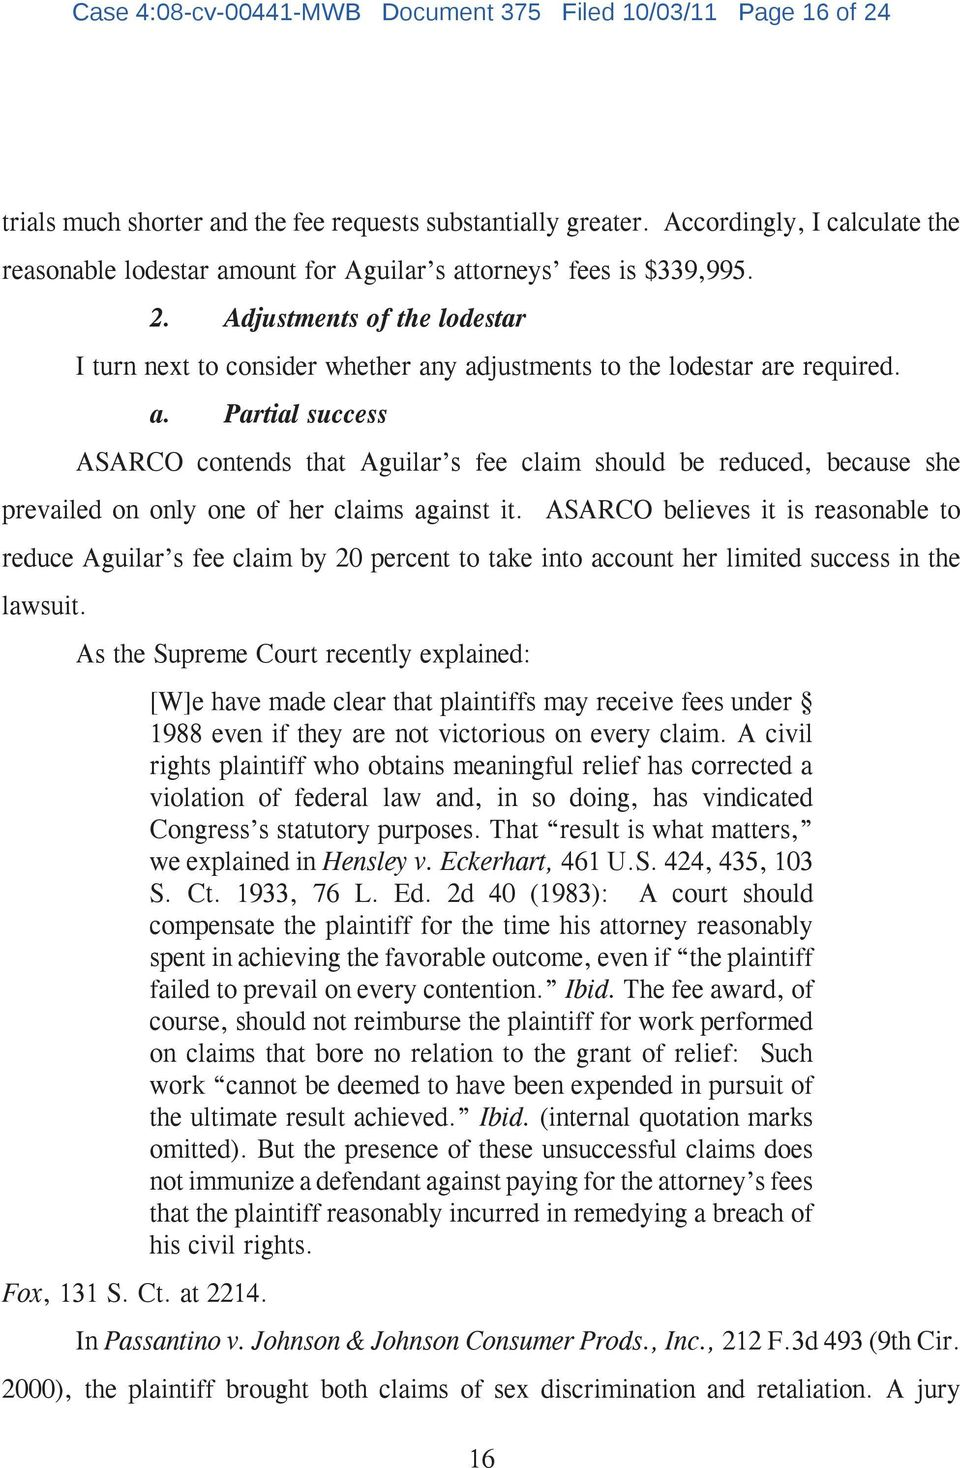 Adjustments of the lodestar I turn next to consider whether any adjustments to the lodestar are required. a. Partial success ASARCO contends that Aguilar s fee claim should be reduced, because she prevailed on only one of her claims against it.